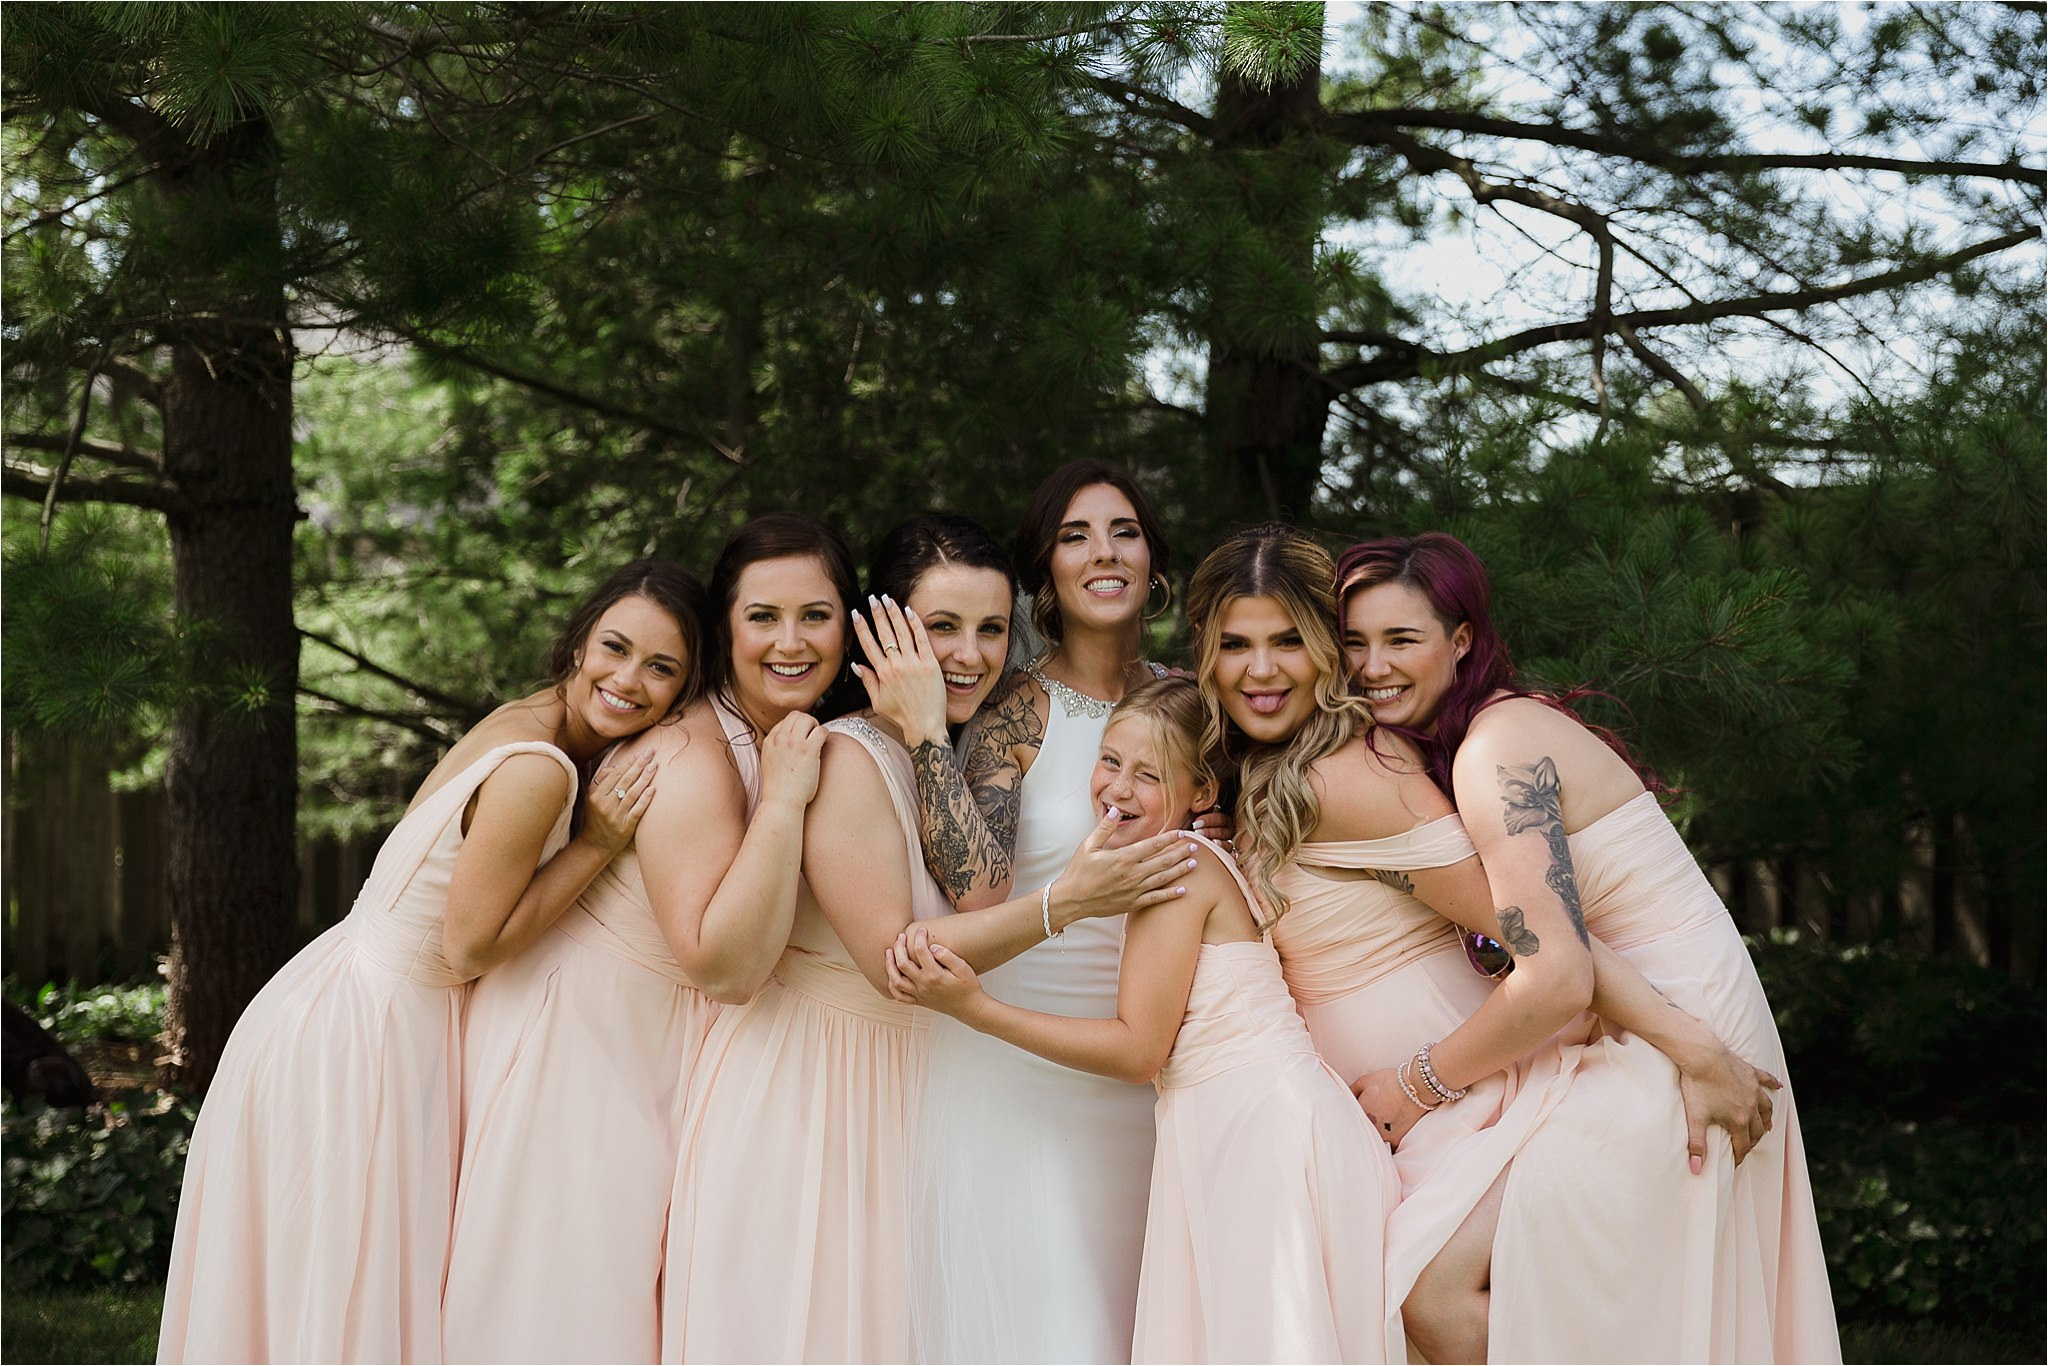 Bride with bridesmaids outside in long blush dresses